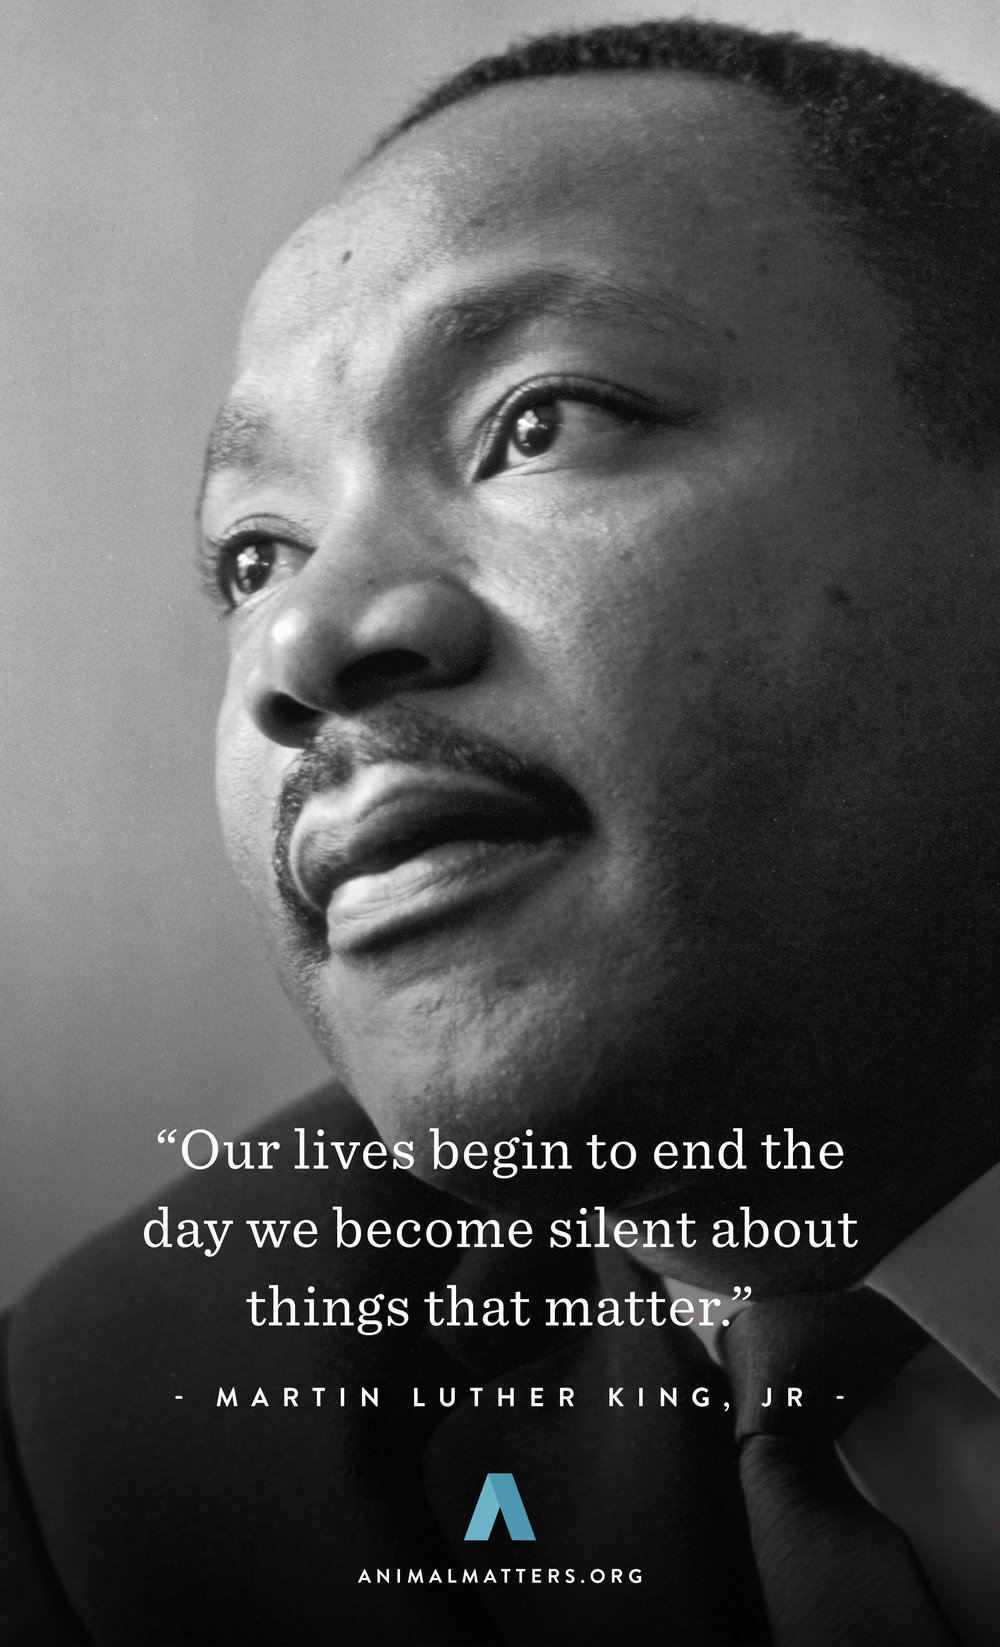 Animal-Matters-MLK_Martin-Luther_King-Quote-Rights-Poster-Ad-Design.jpg